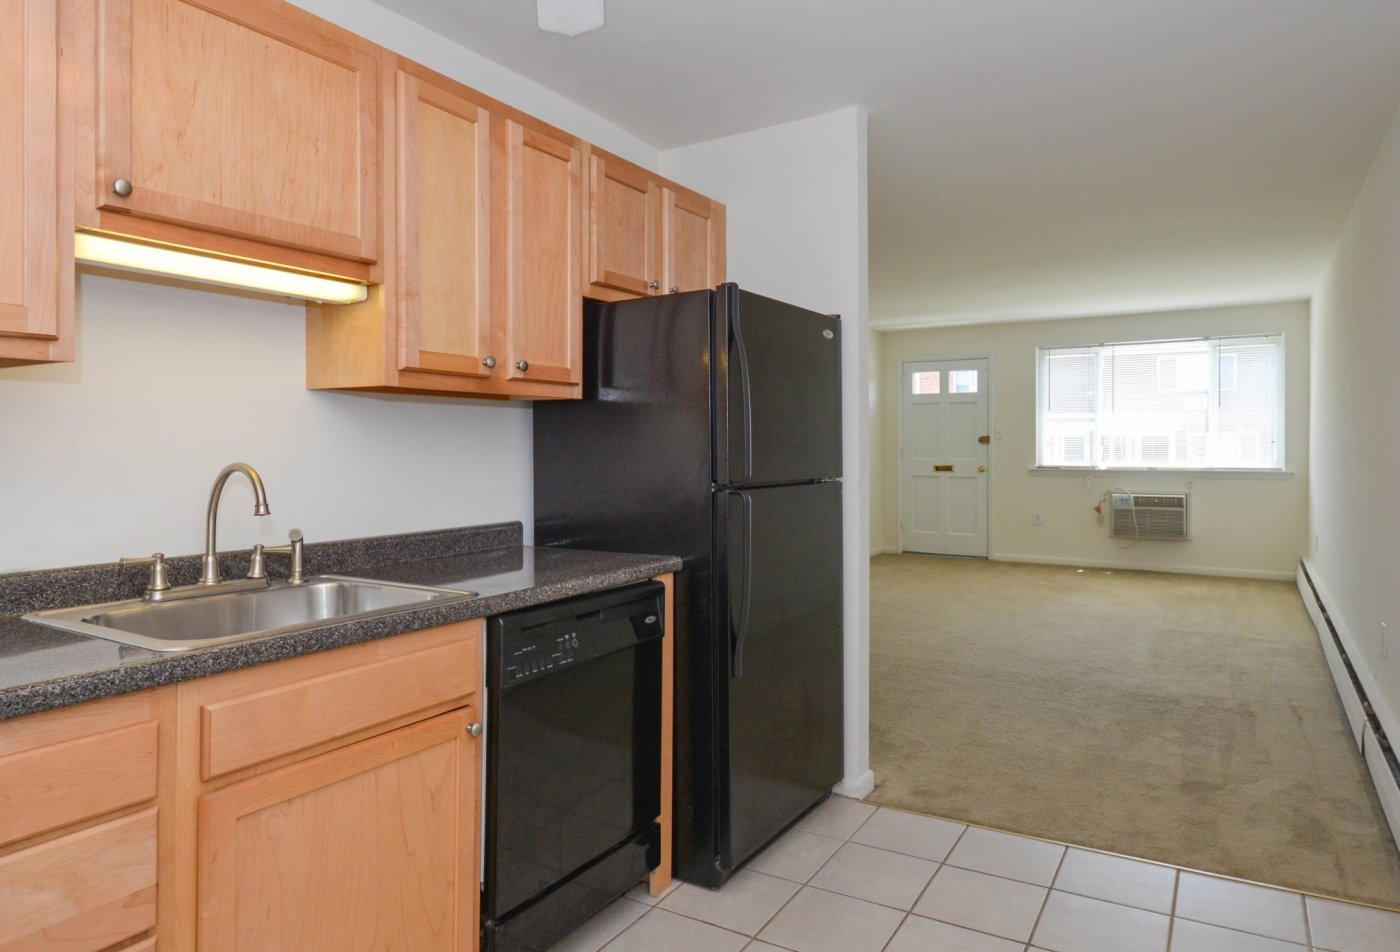 State-of-the-Art Kitchen | Aston PA Apartment Homes | Concord Court Apartments